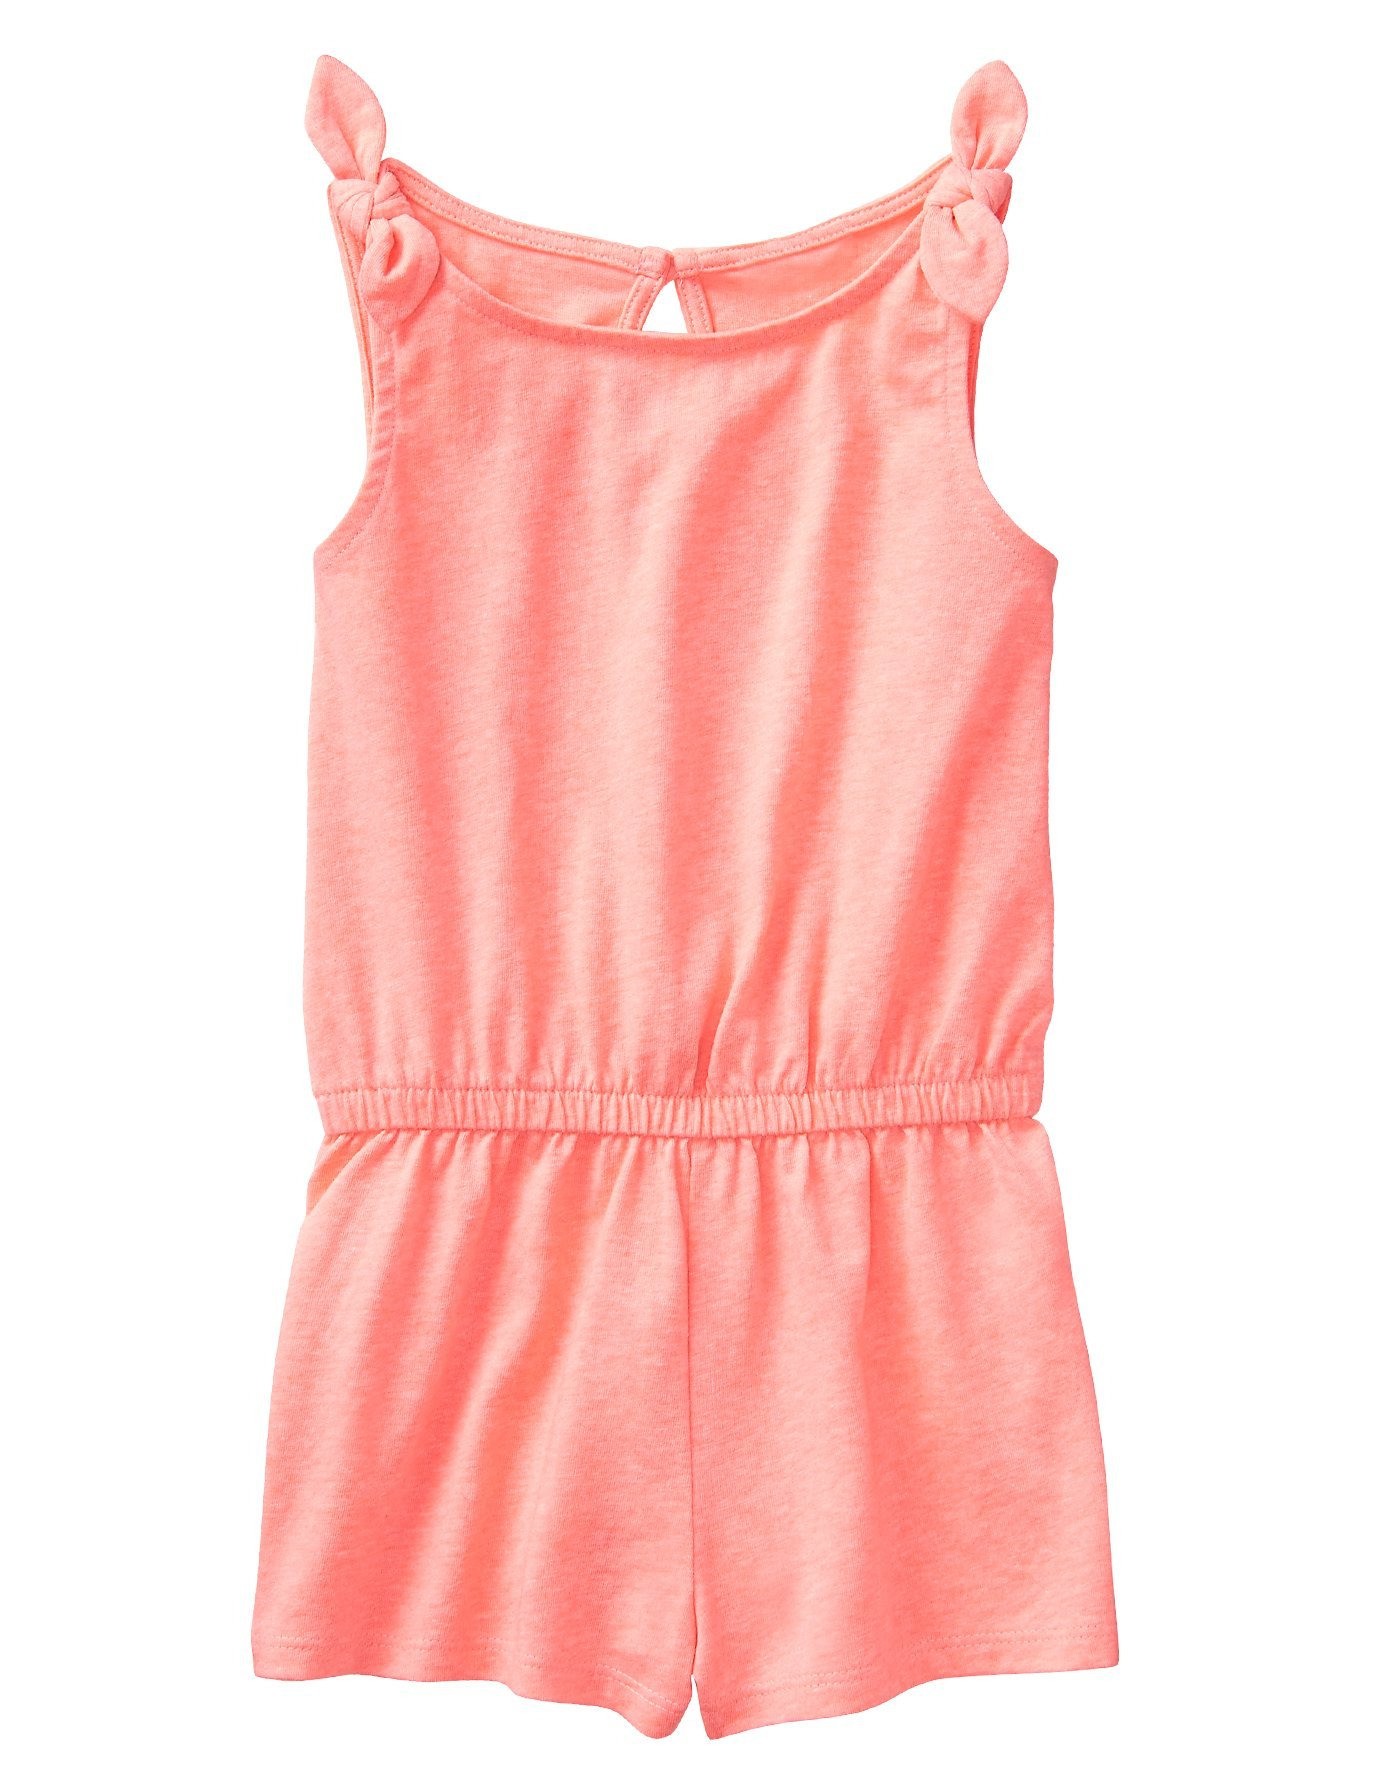 Crazy 8 Girls' Toddler Elastic Waist Knot Sleeve Knit Romper, neon Light Coral, 4T